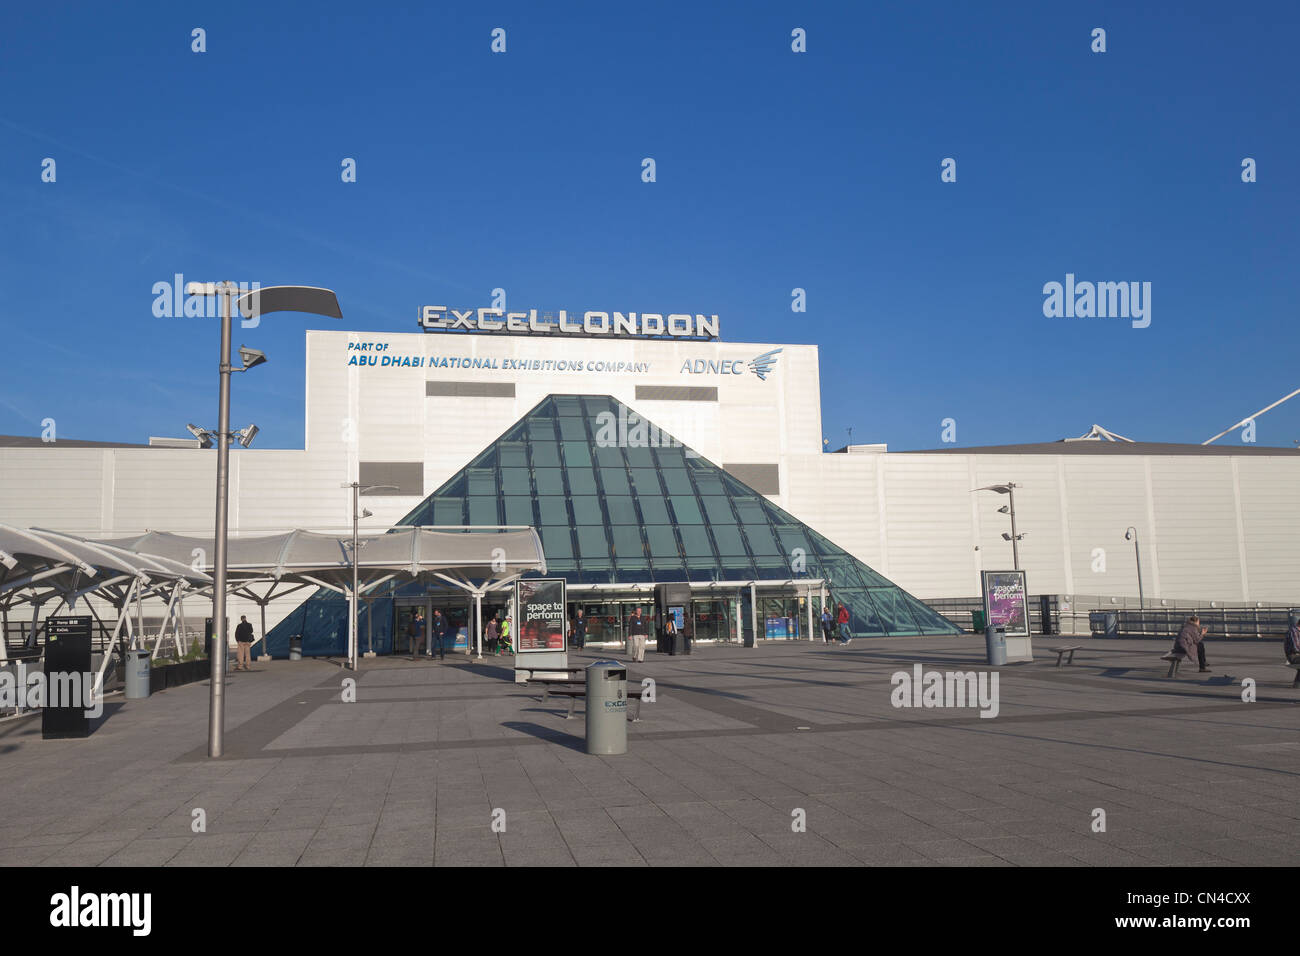 ExCeL centre, London, England - Stock Image